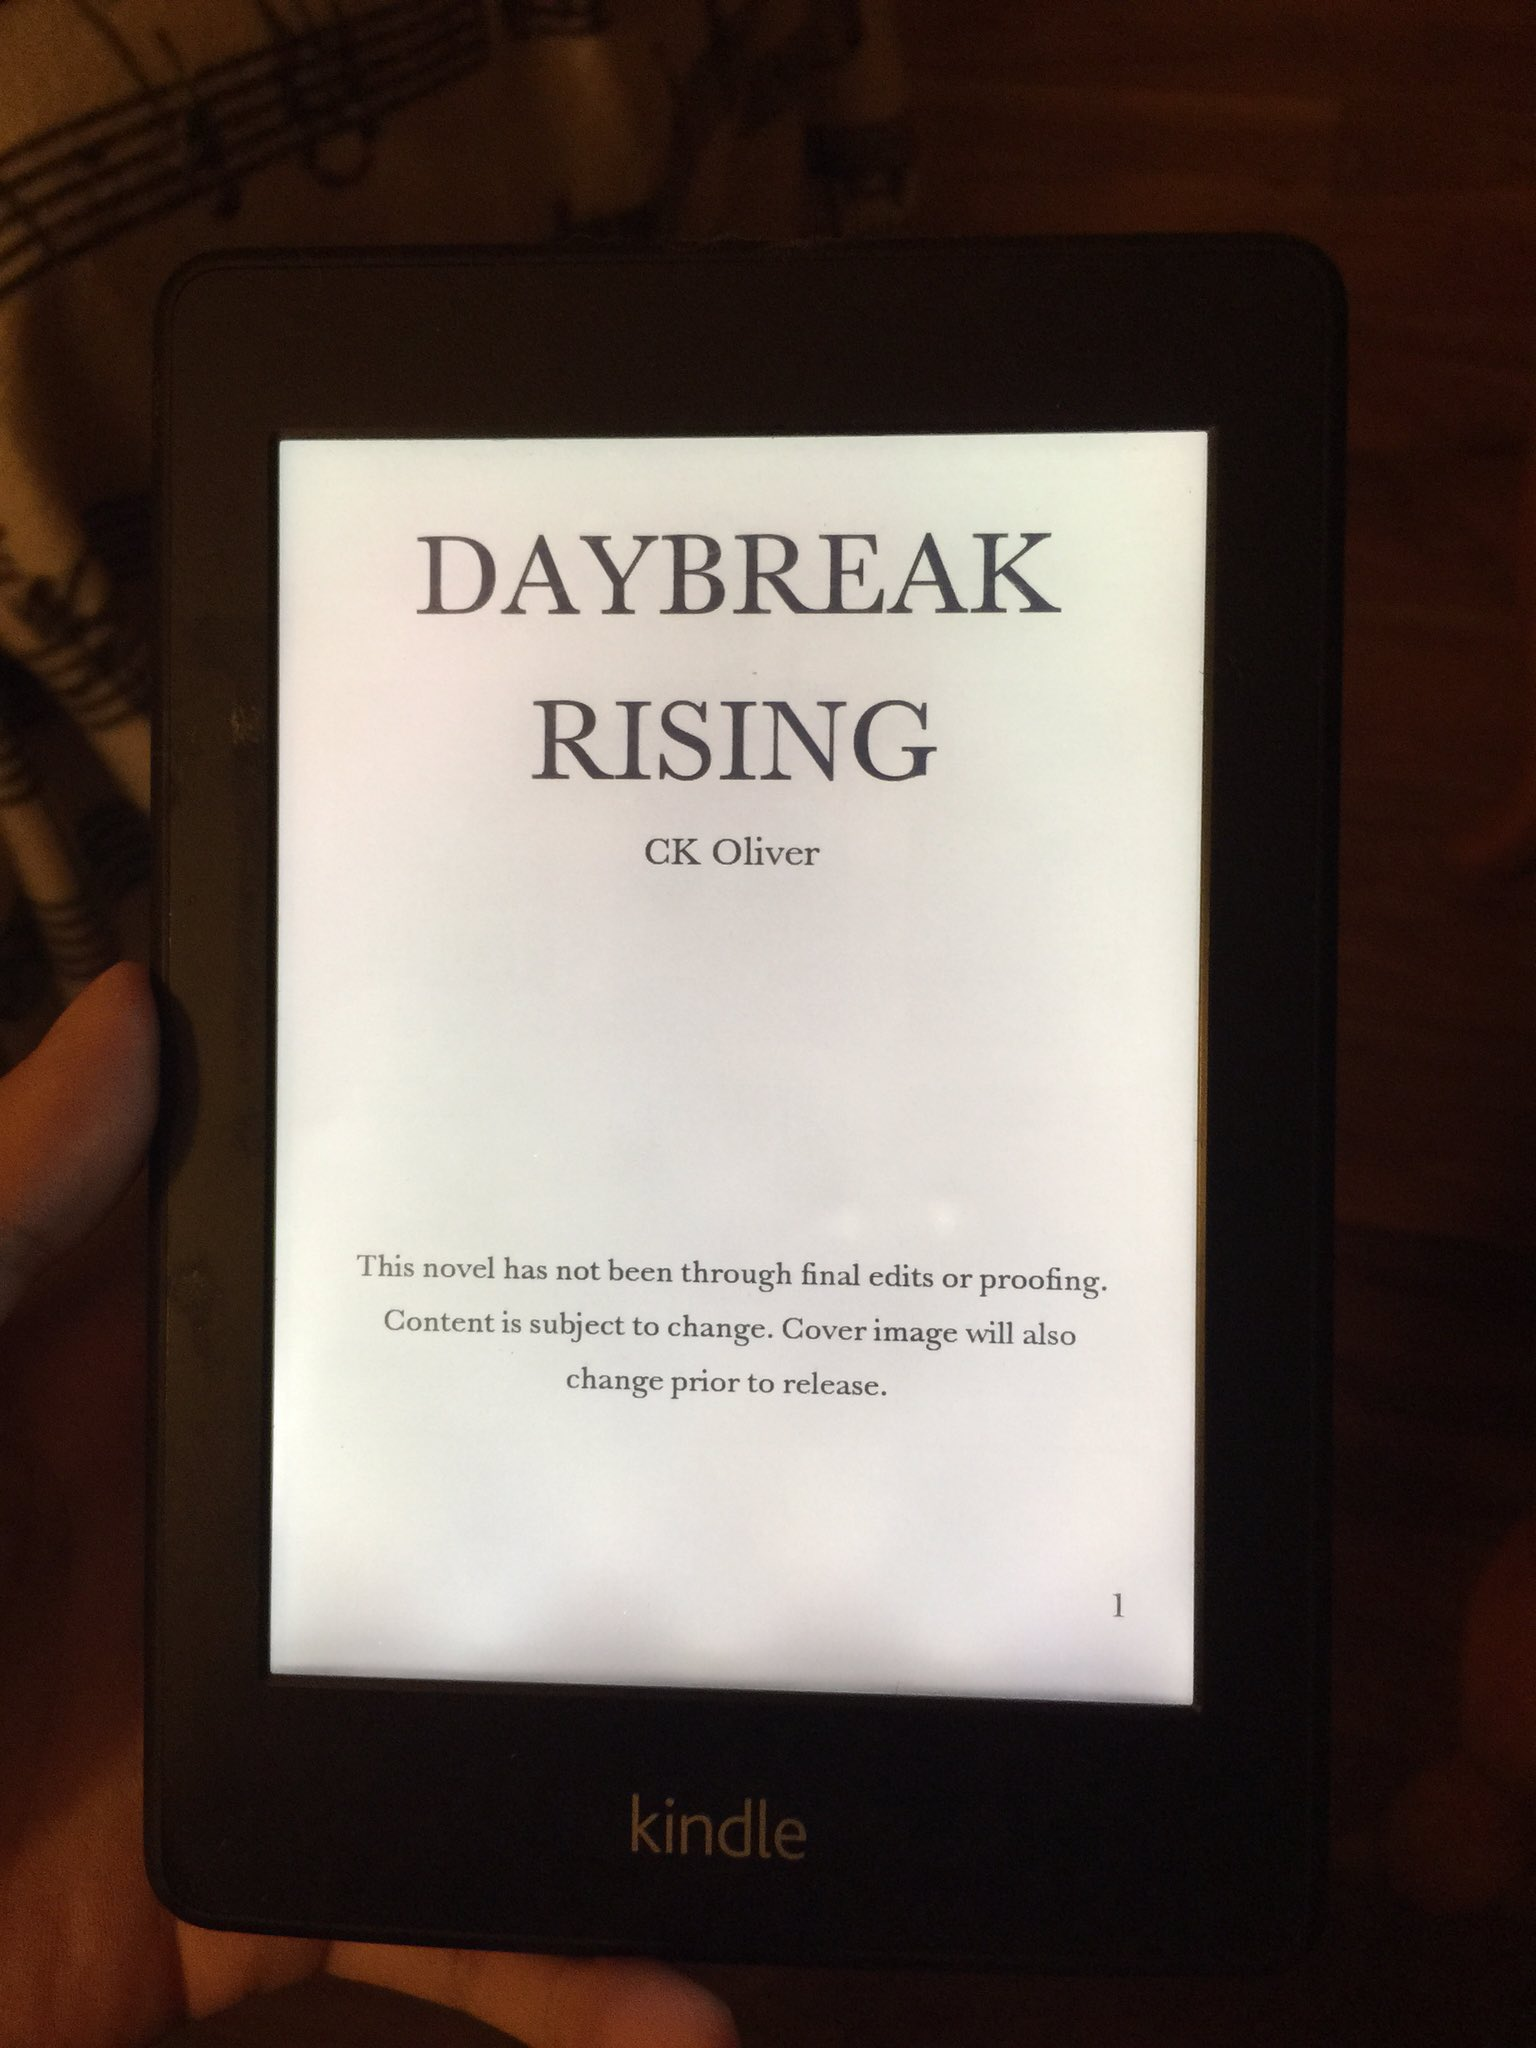 I'M GOING IN!! Been looking forward to this ARC for MONTHS! #DaybreakRising @coliver_writes https://t.co/d2tTBCur7B